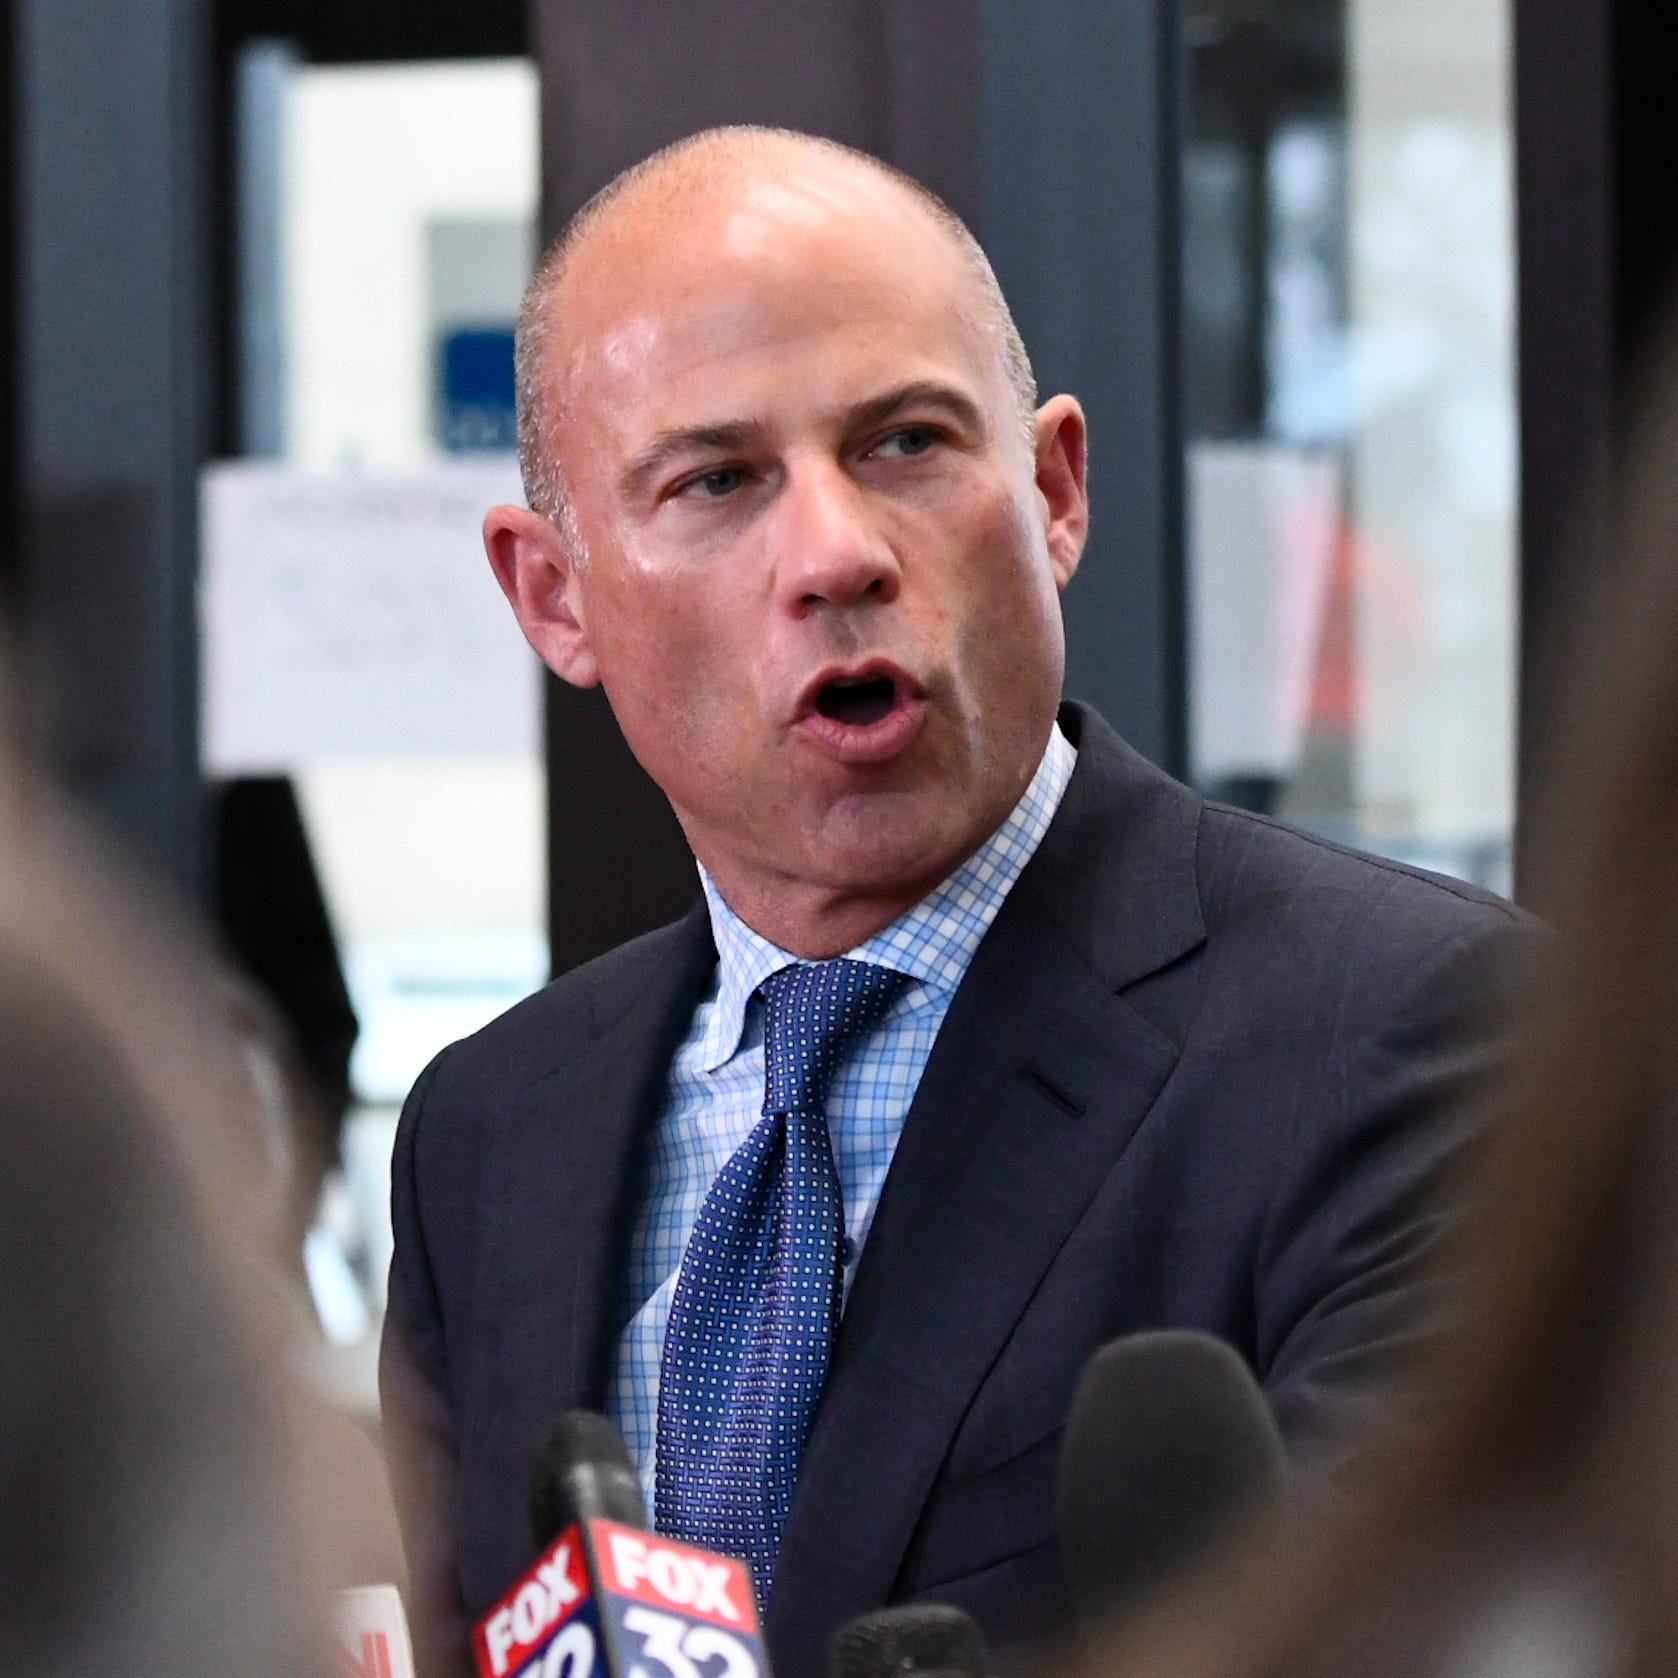 Attorney Michael Avenatti, seen here following R. Kelly's first court appearance Saturday, says he has another sex tape of the singer with an underage girl.